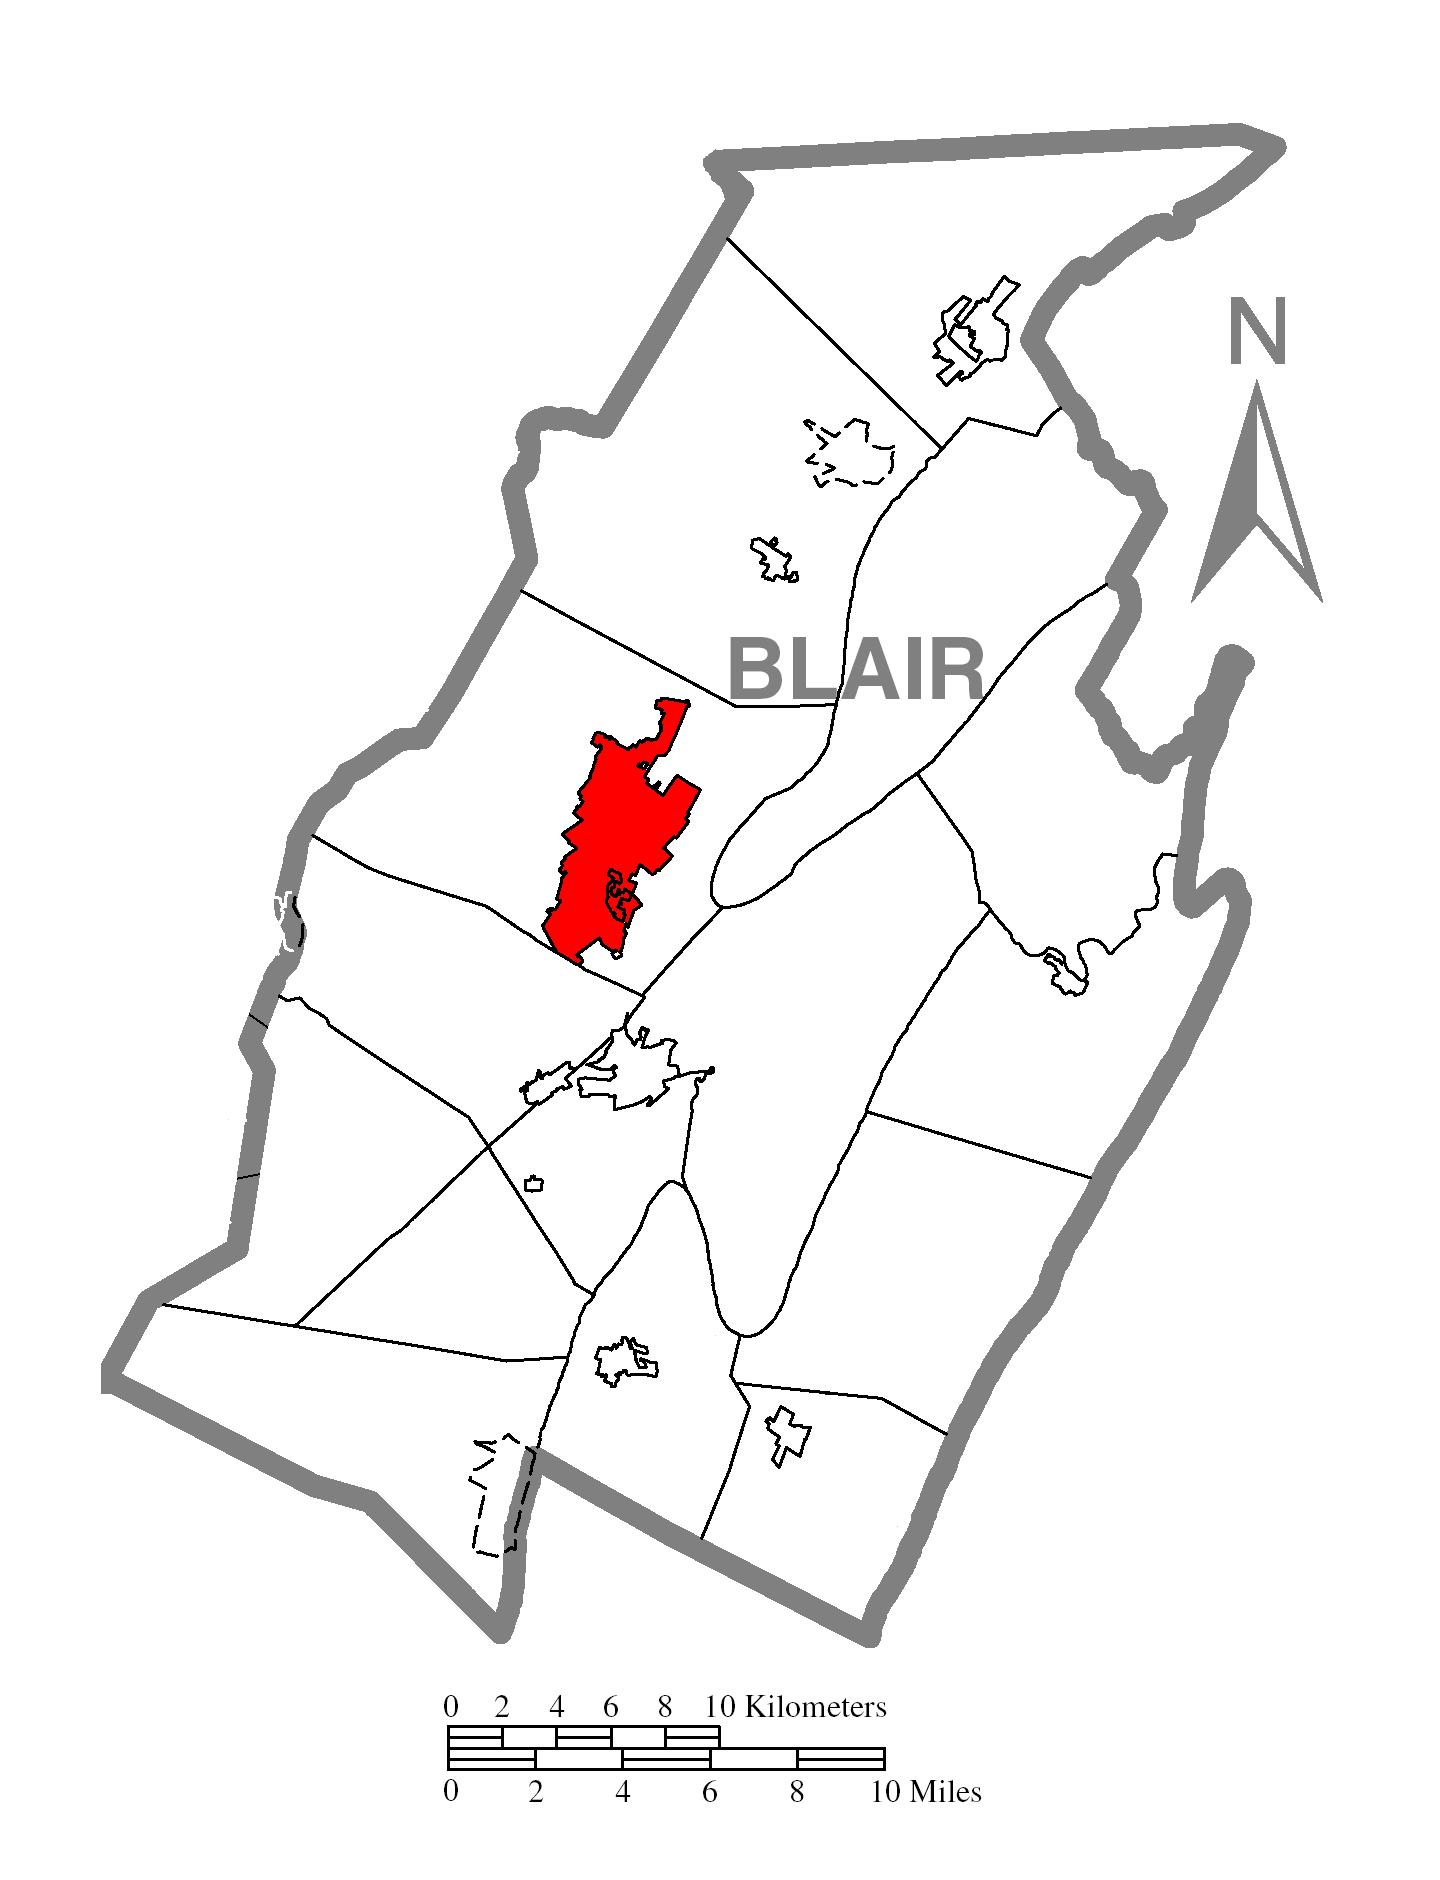 Map Of Altoonac Blair Countyc Pennsylvania Highlighted